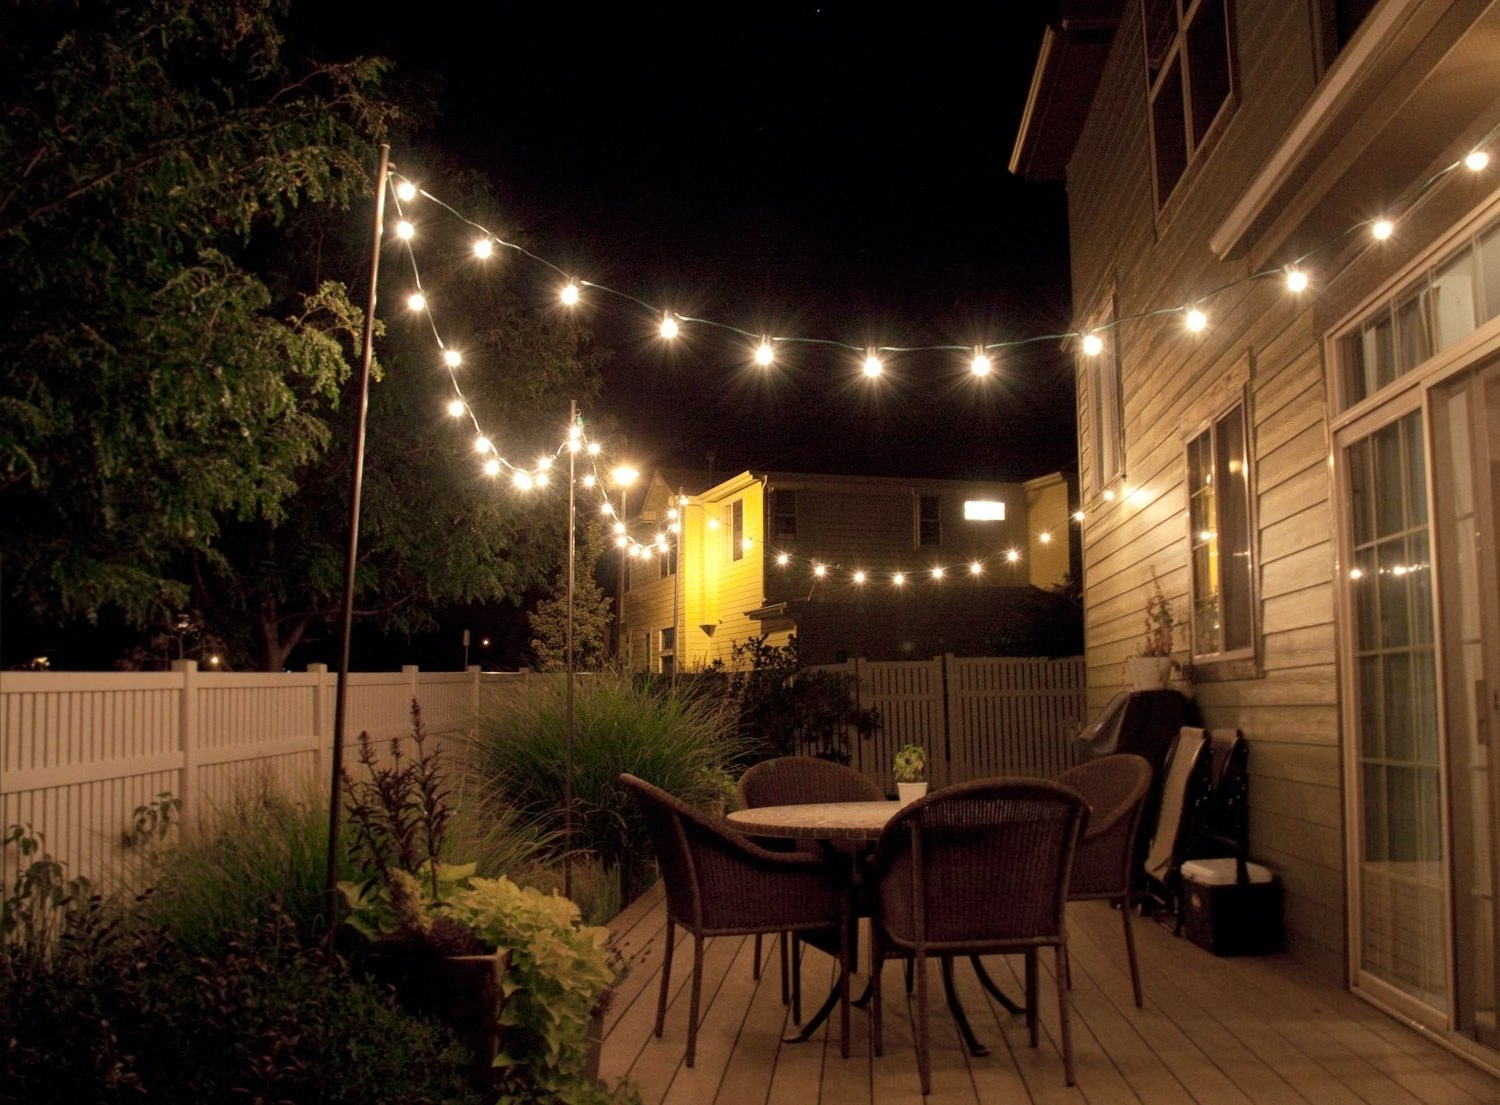 Current Hanging Outdoor Lights On Fence With How To Make Inexpensive Poles To Hang String Lights On – Café Style (View 5 of 20)